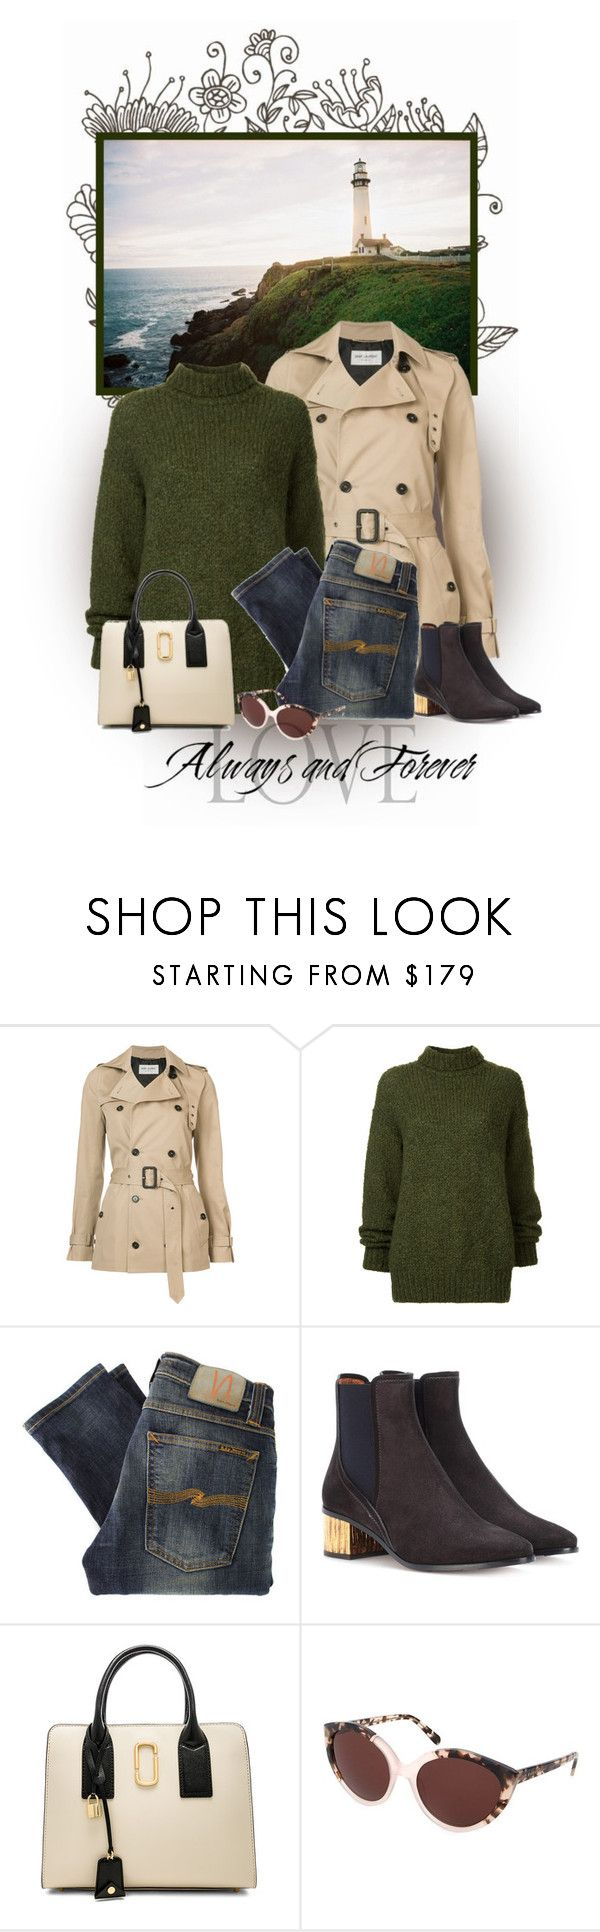 """""""Lighthouse"""" by seafreak83 on Polyvore featuring Yves Saint Laurent, I AM Studio, Nudie Jeans Co., Chloé, Marc Jacobs and Ted Baker"""